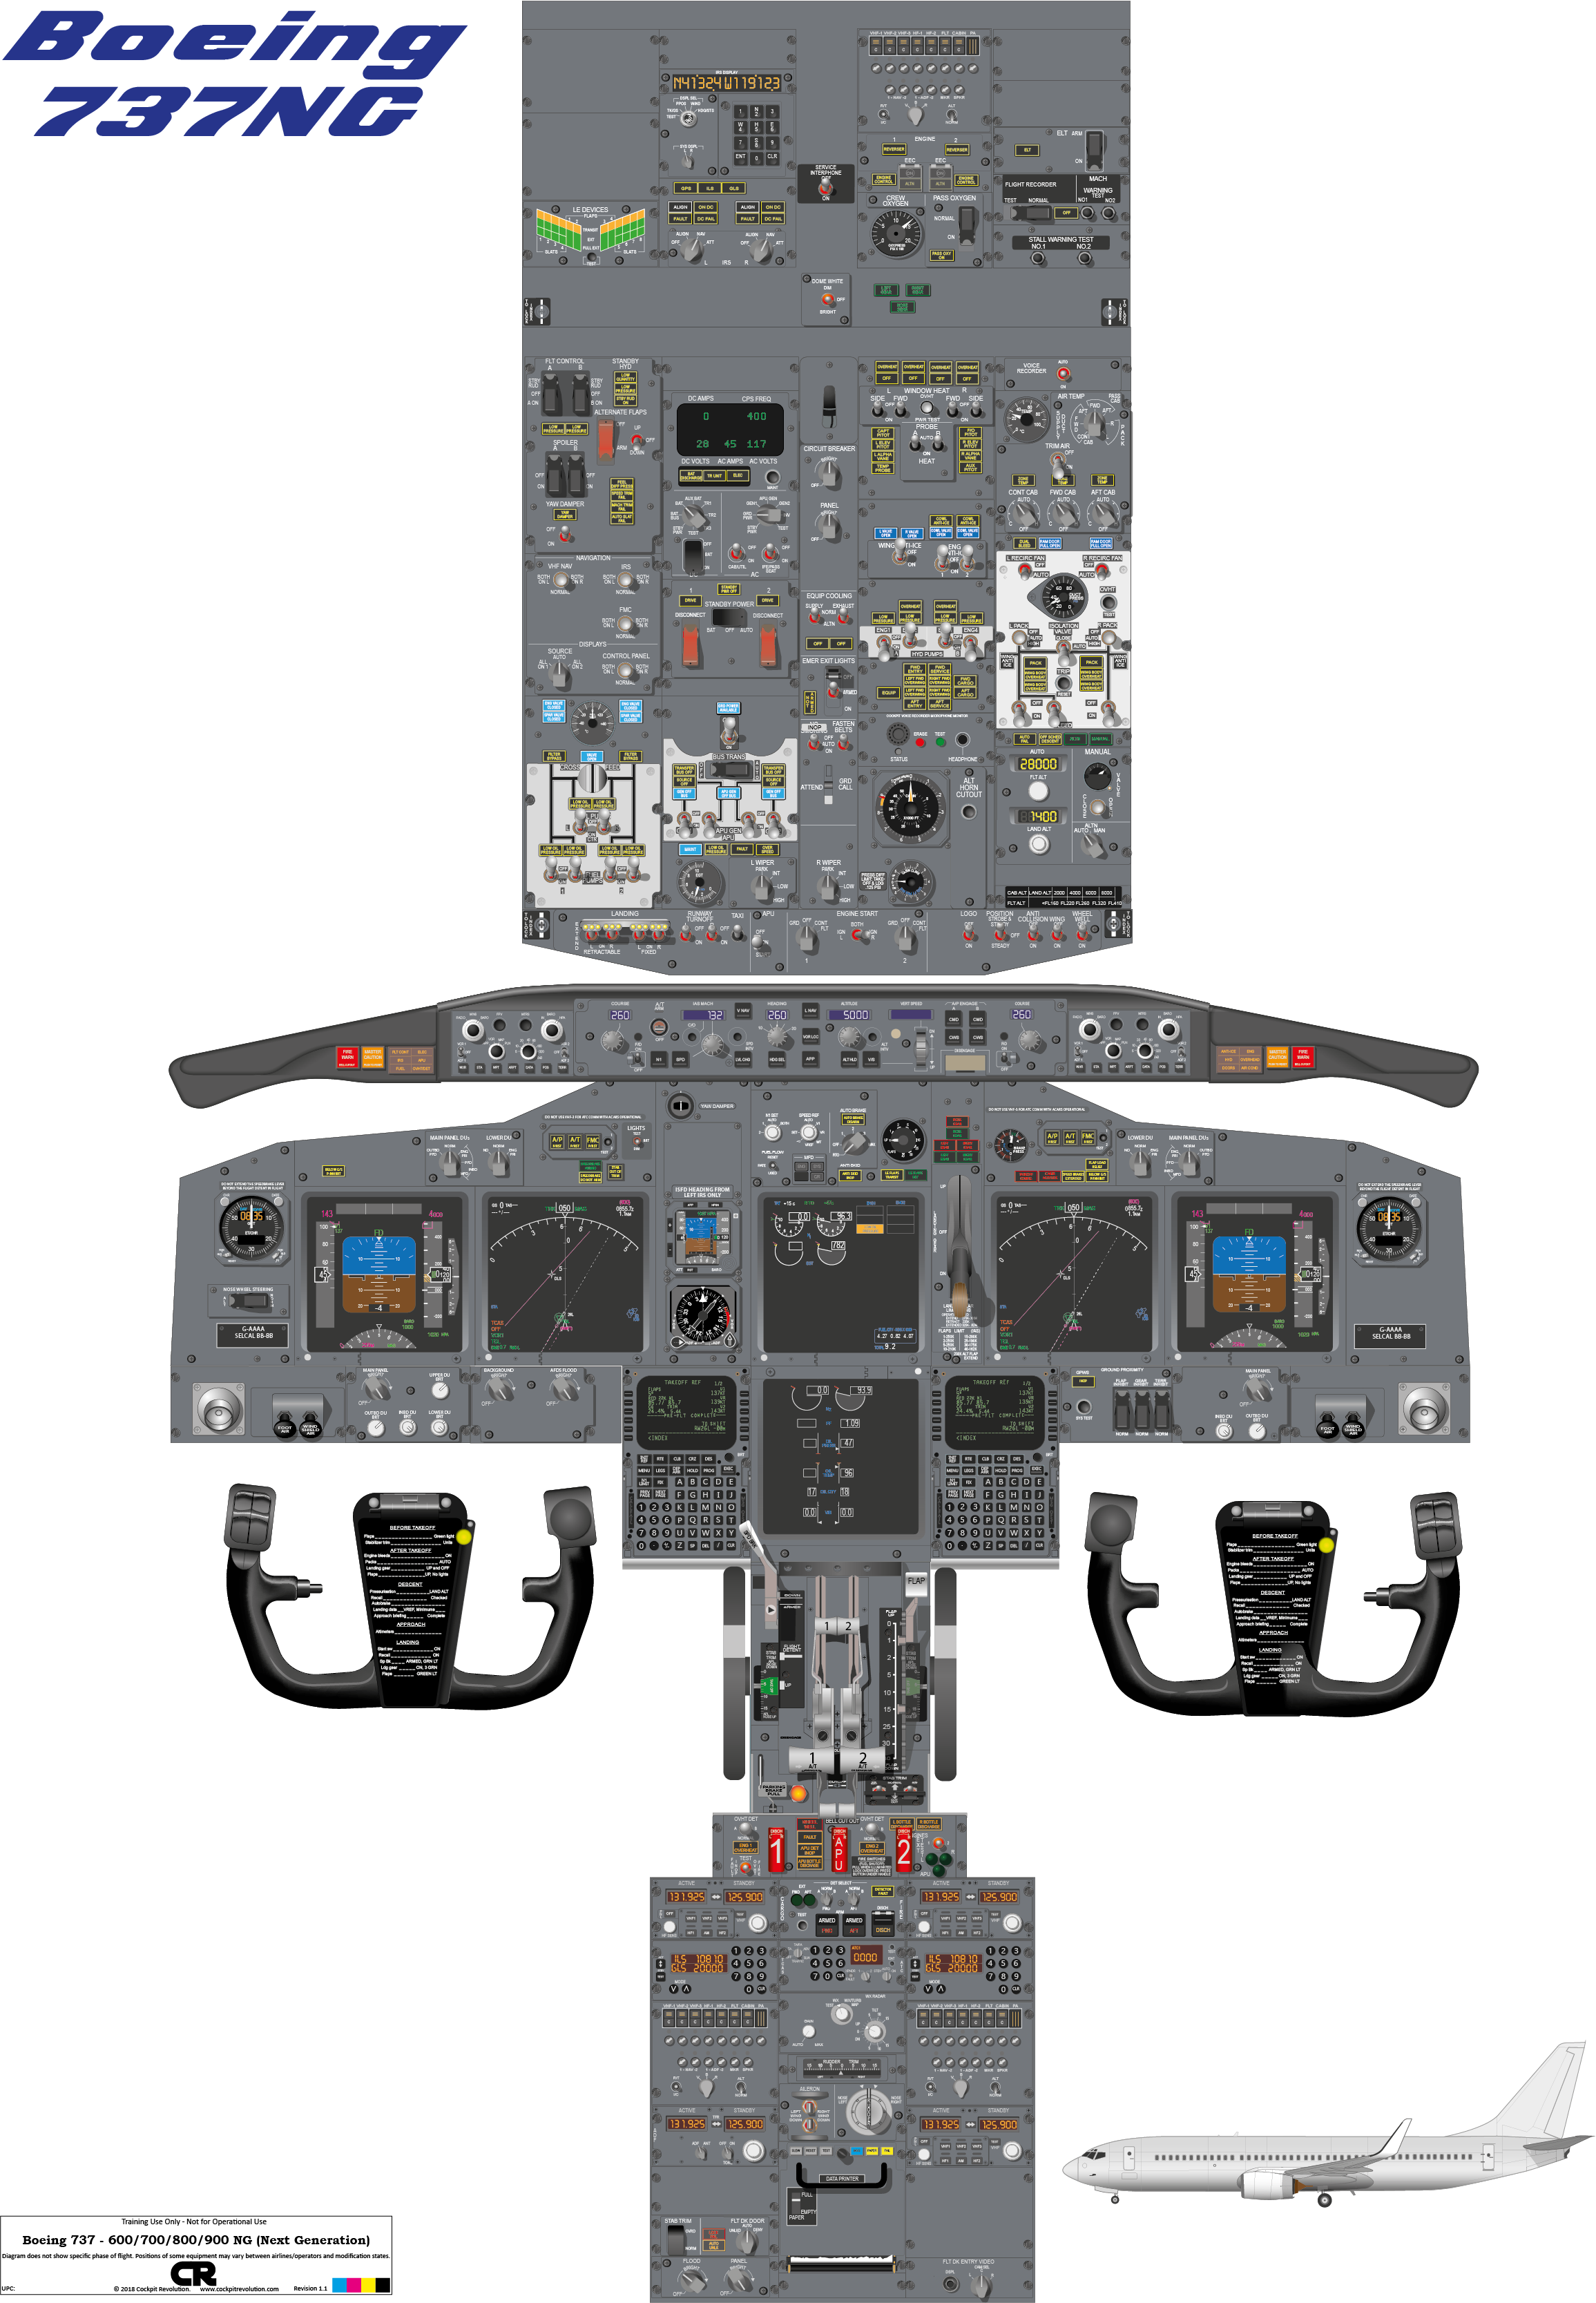 Cockpit poster of the Boeing 737-600/700/800/900 Next